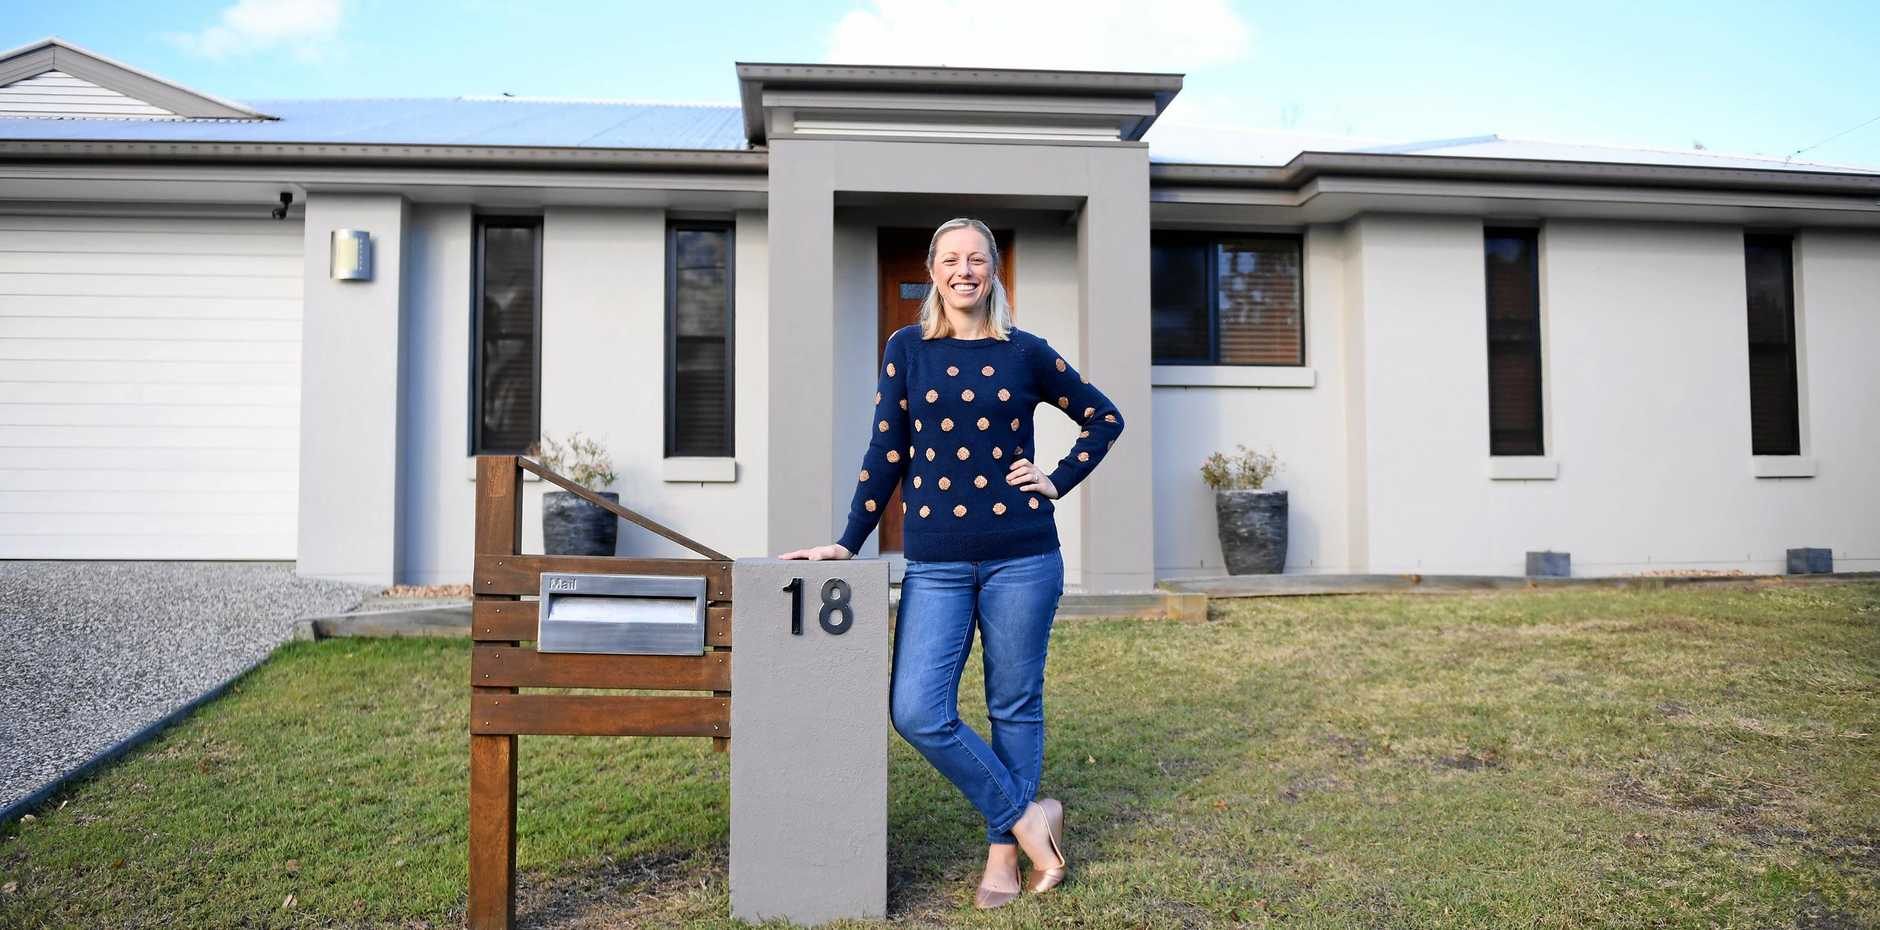 ON THE MARKET: Brooke Bowers is selling her house.